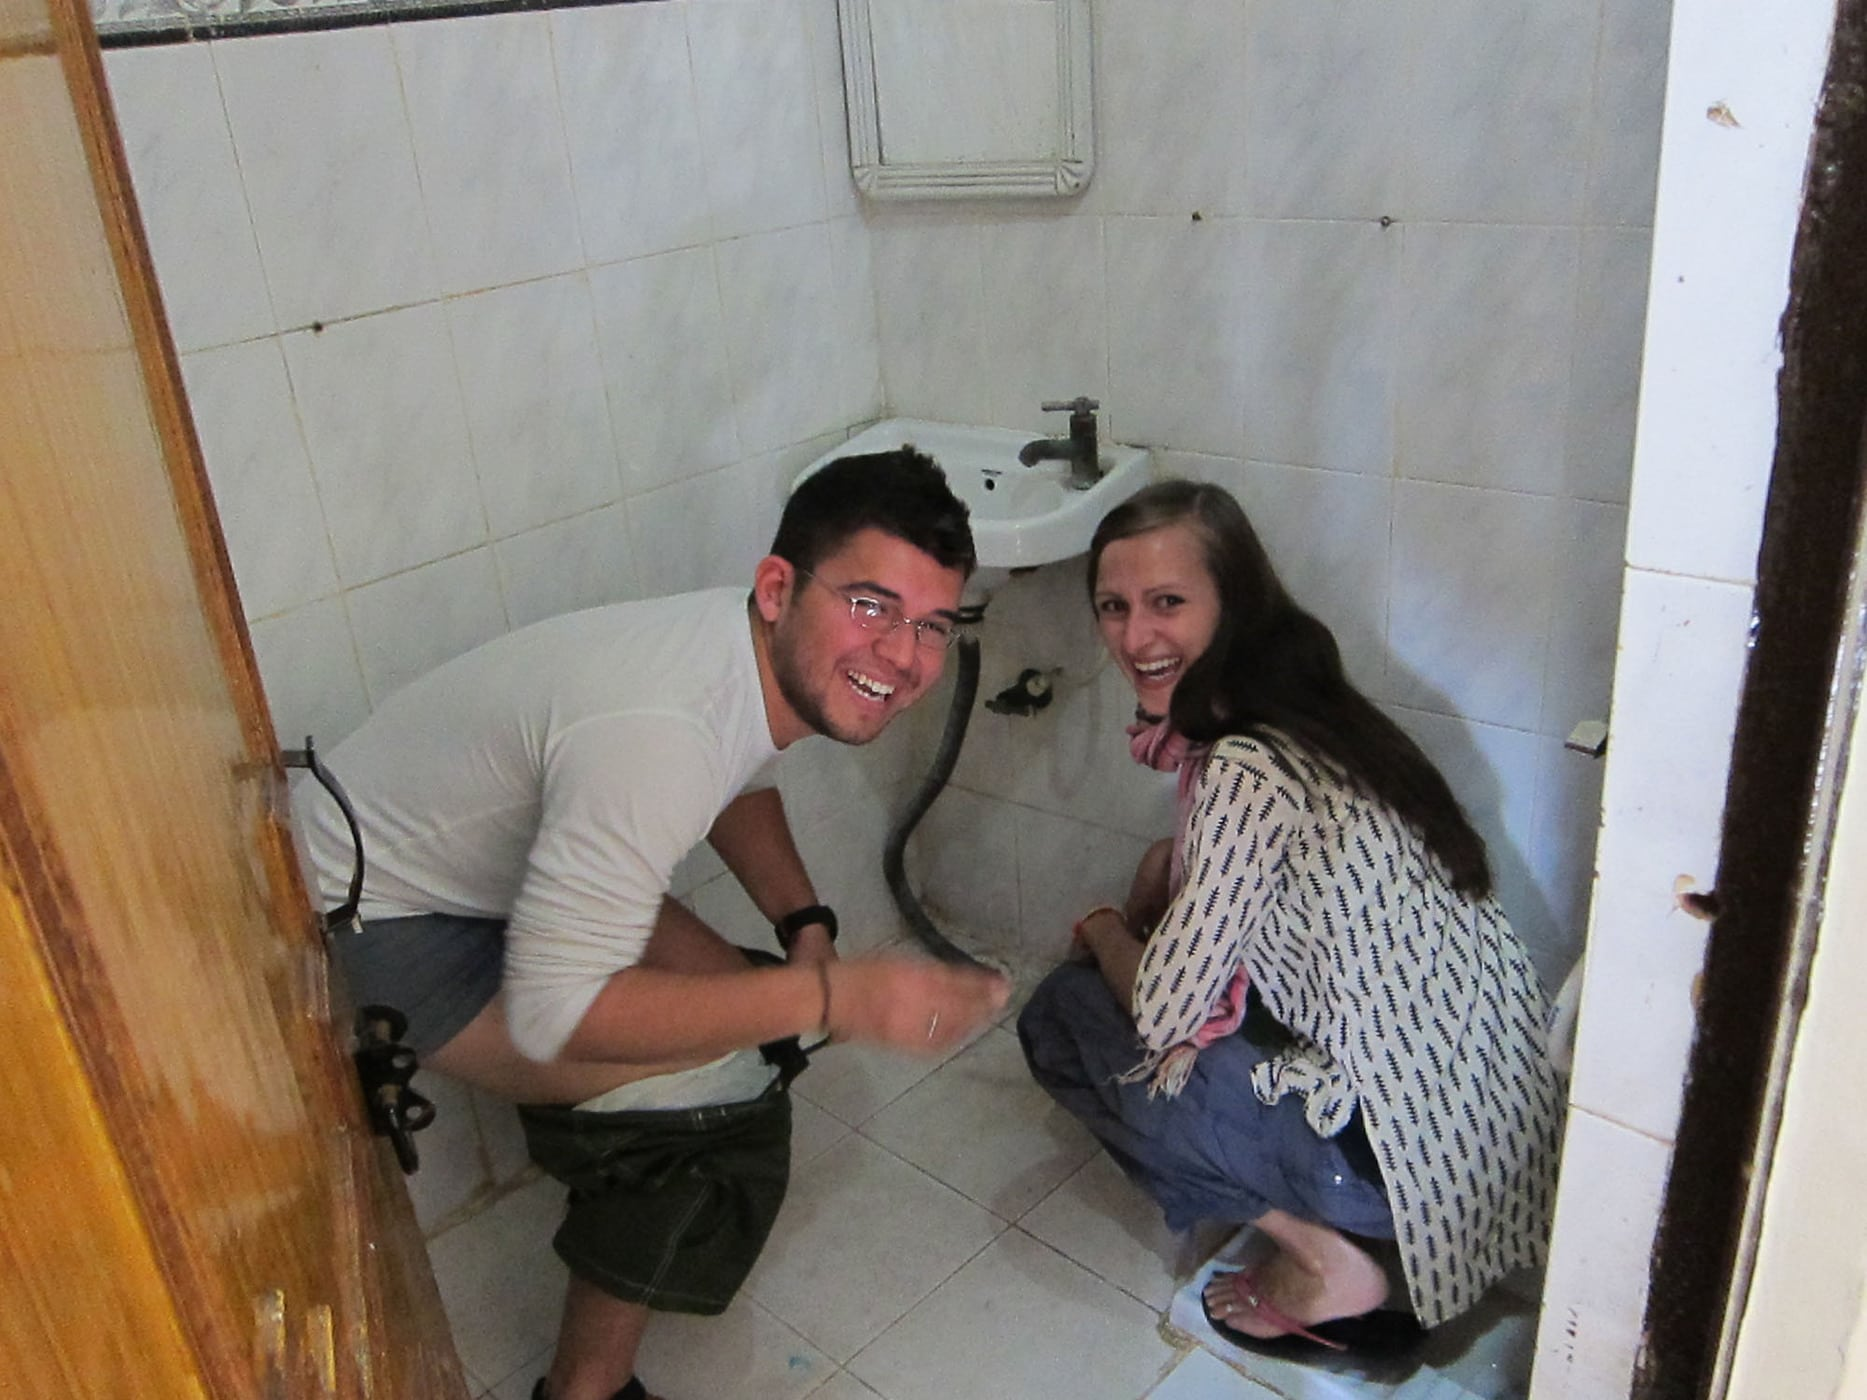 Teaching Jaime to use the squat toilet in Mathura, India.